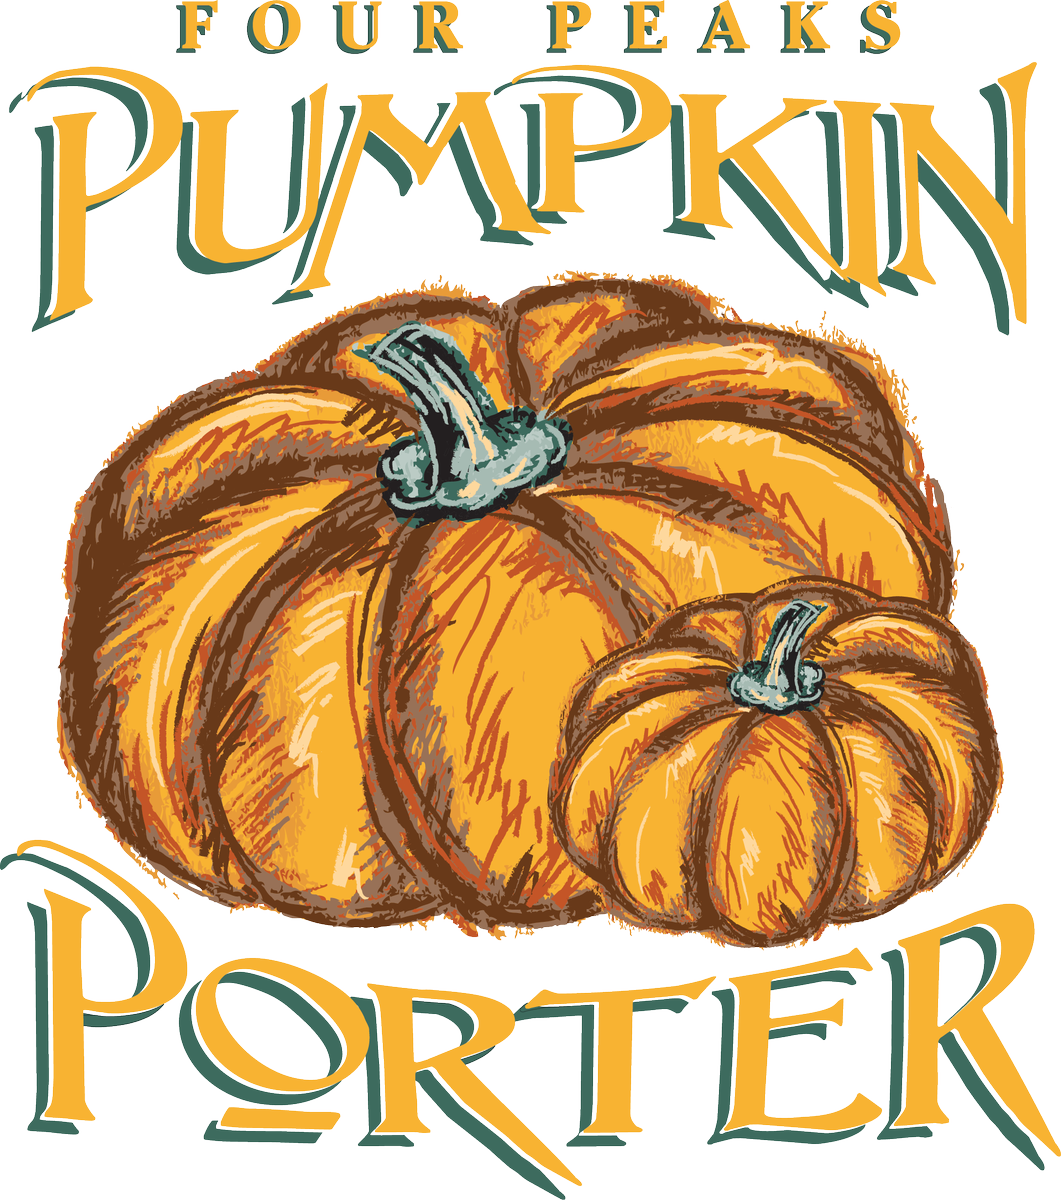 Save the date clipart pumpkin vector free download Four Peaks Brewing Co. on Twitter: